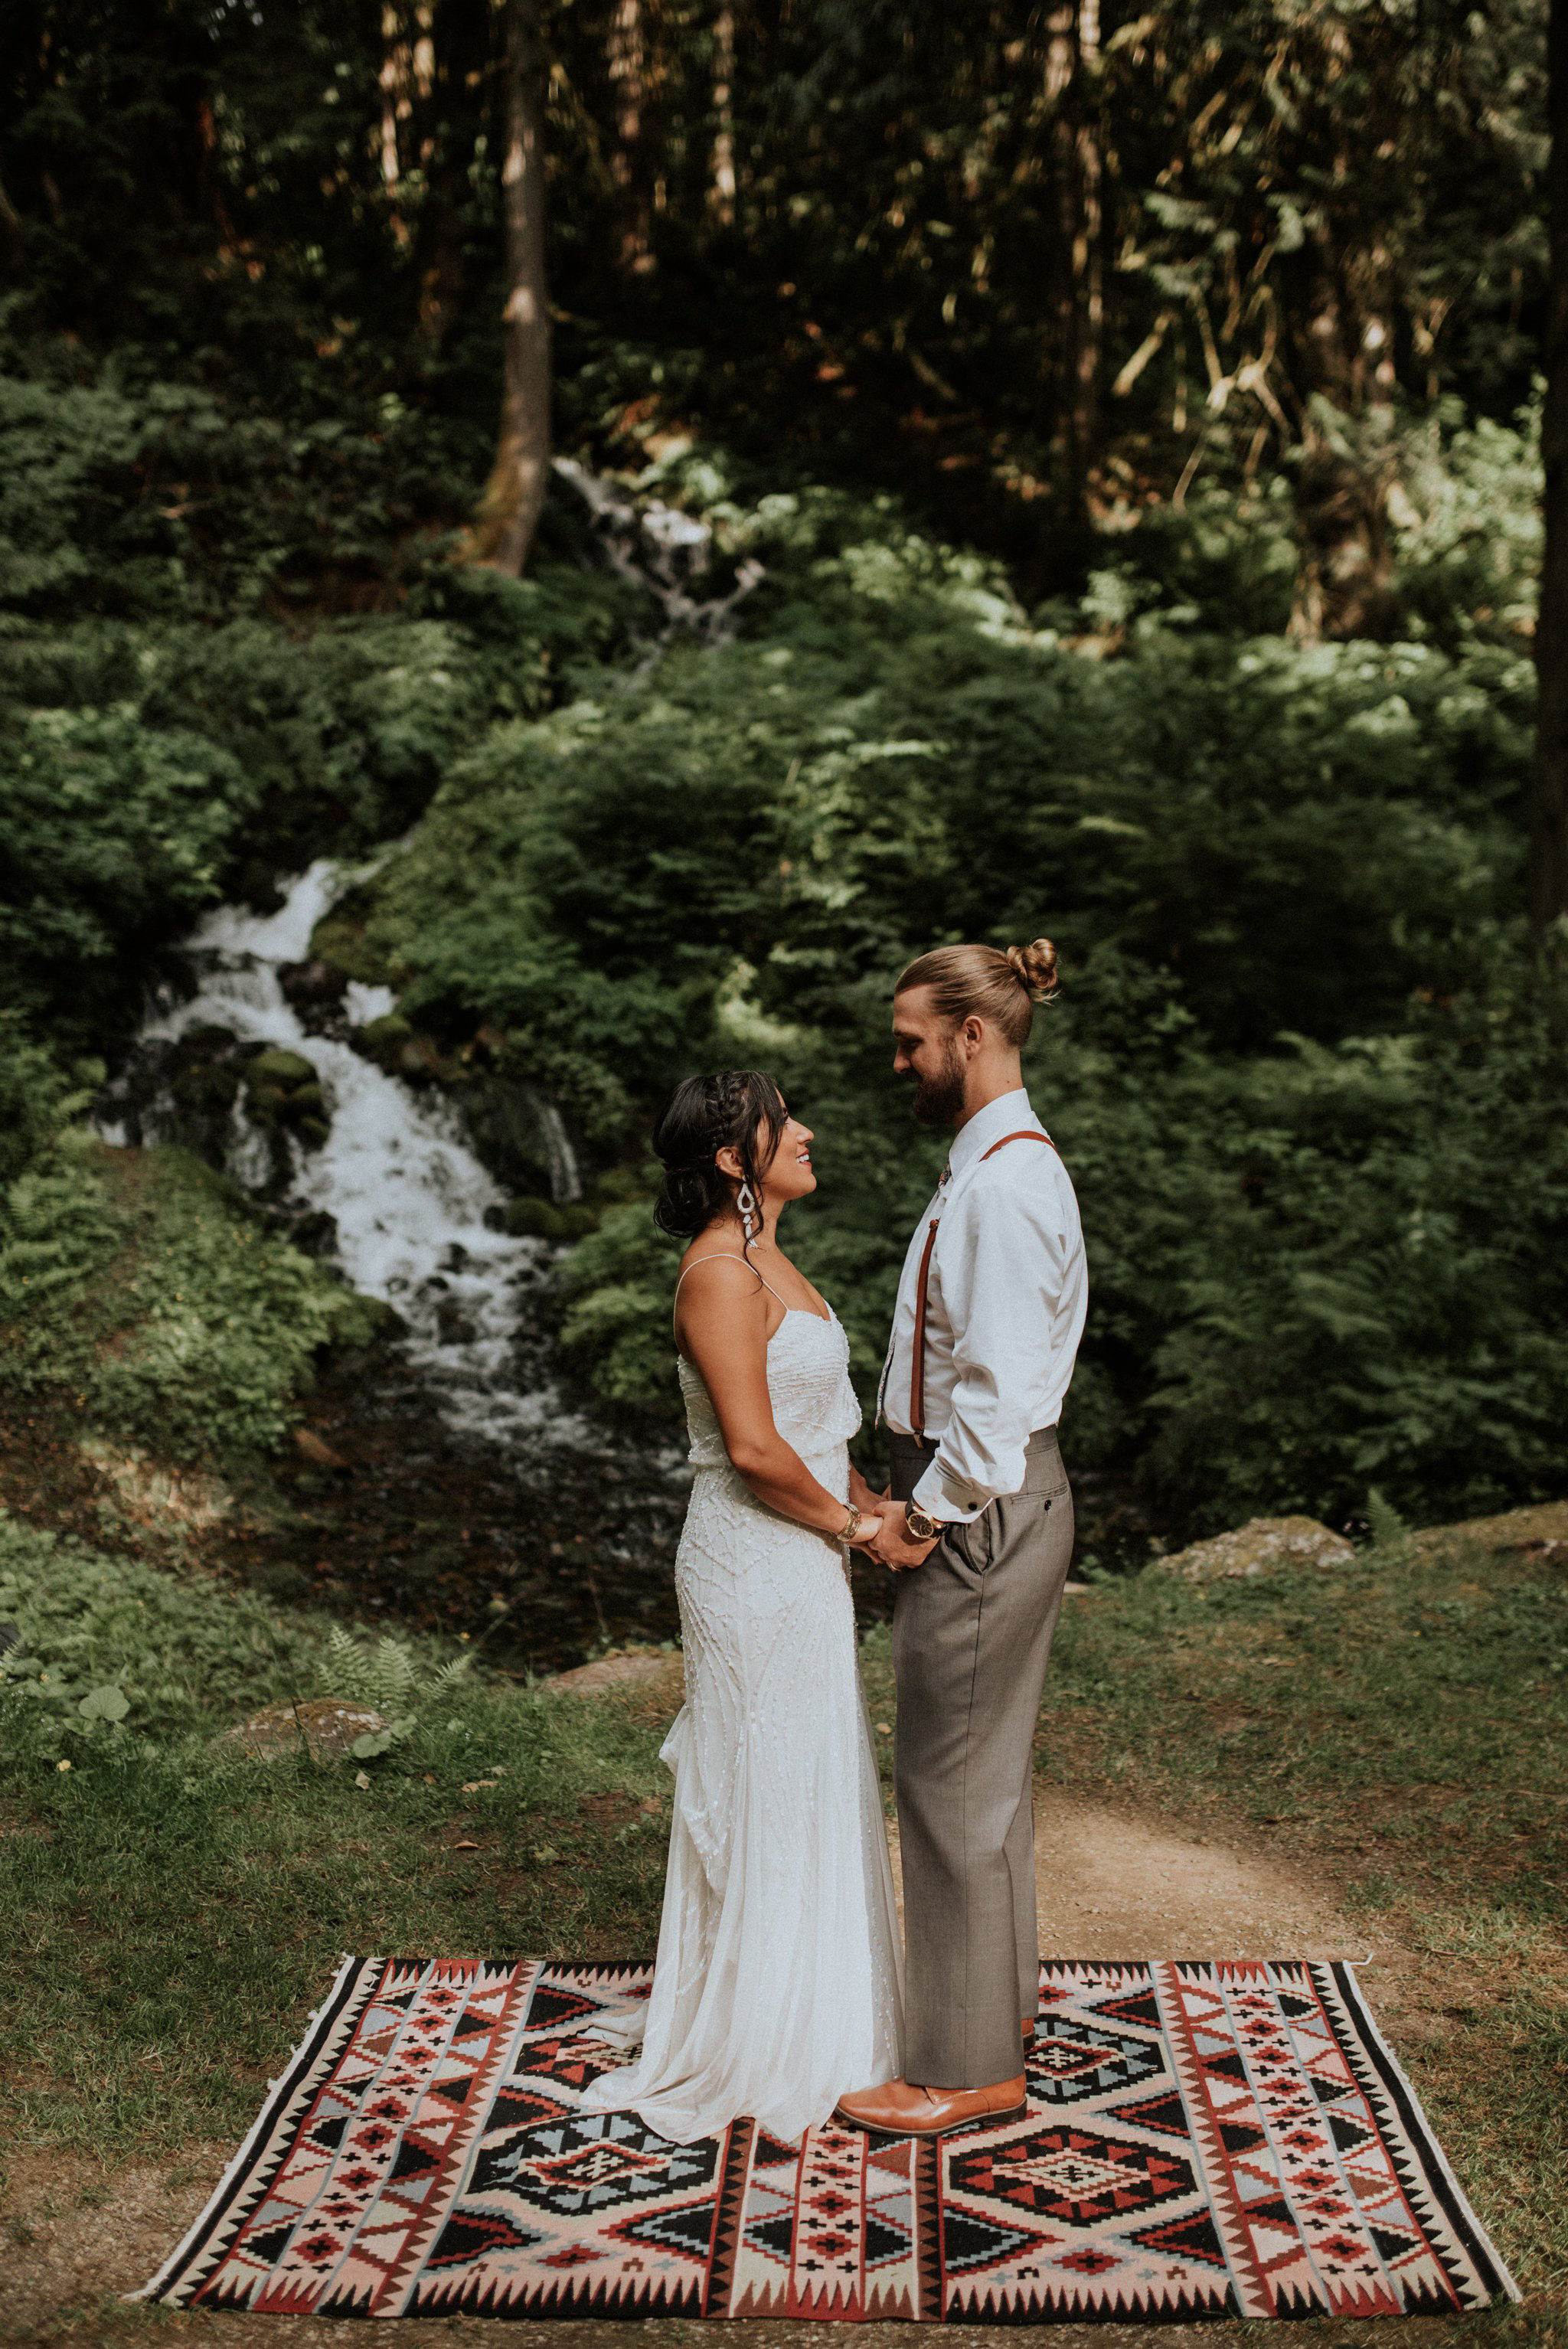 intimate-boho-campfire-wedding-shangri-la-on-the-green-seattle-wedding-photographer-caitlyn-nikula-photography-95.jpg